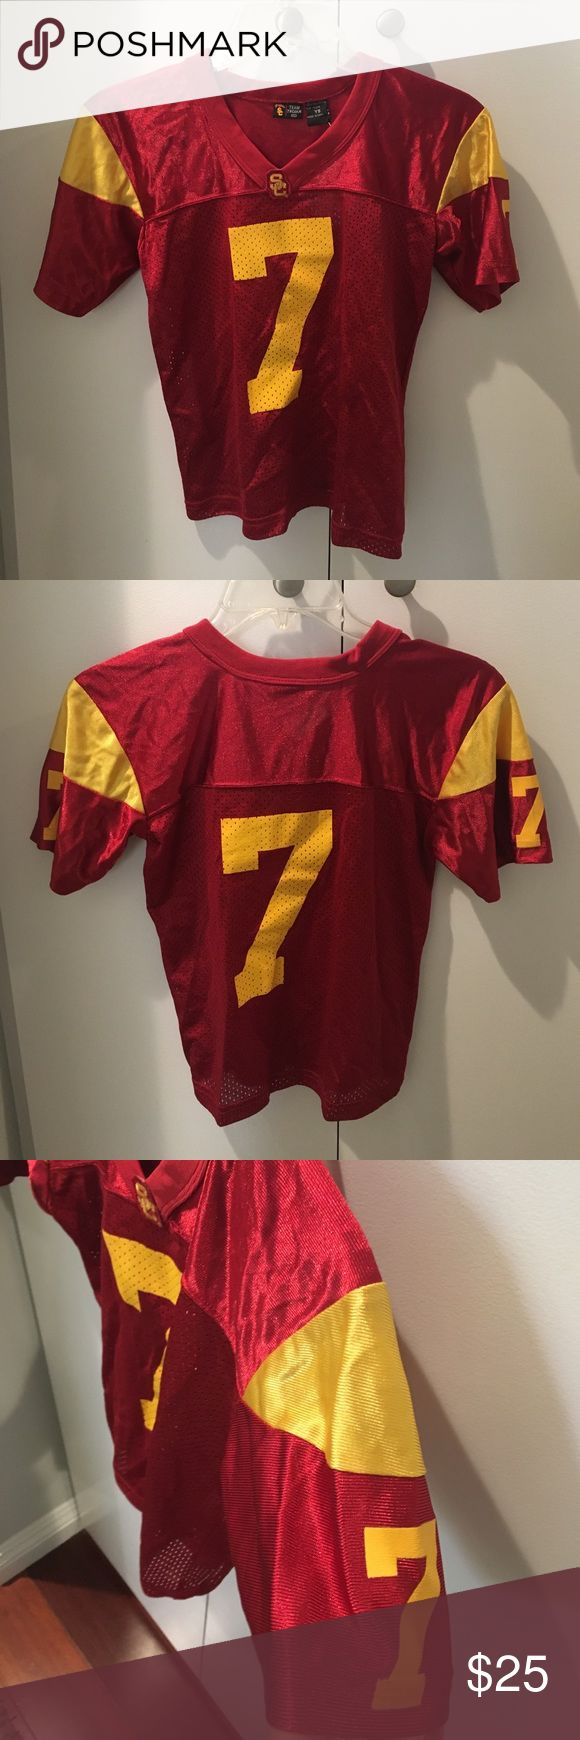 USC Trojans youth football jersey Brand new with tags USC Trojans youth football jersey. This was bought from the USC book store. Number 7 jersey. Costumes Seasonal